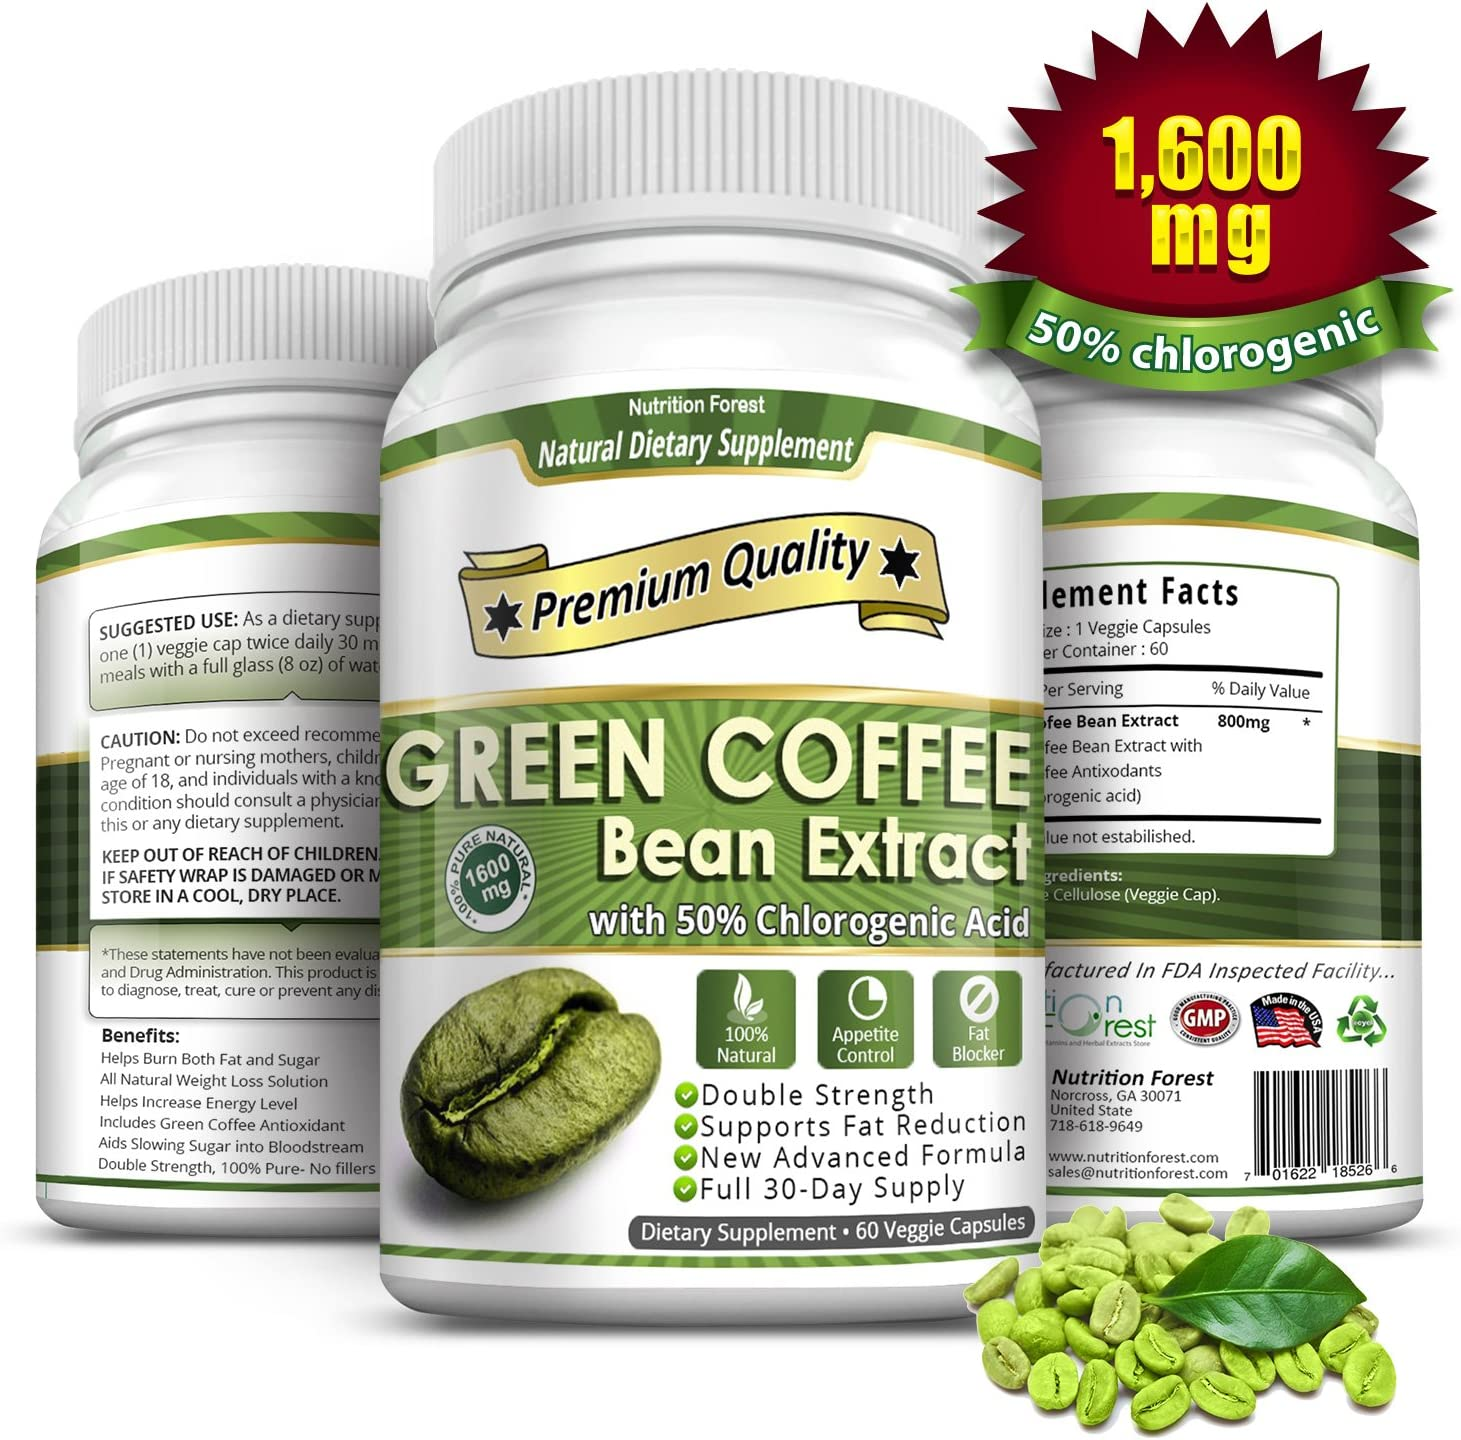 green coffee what if formula